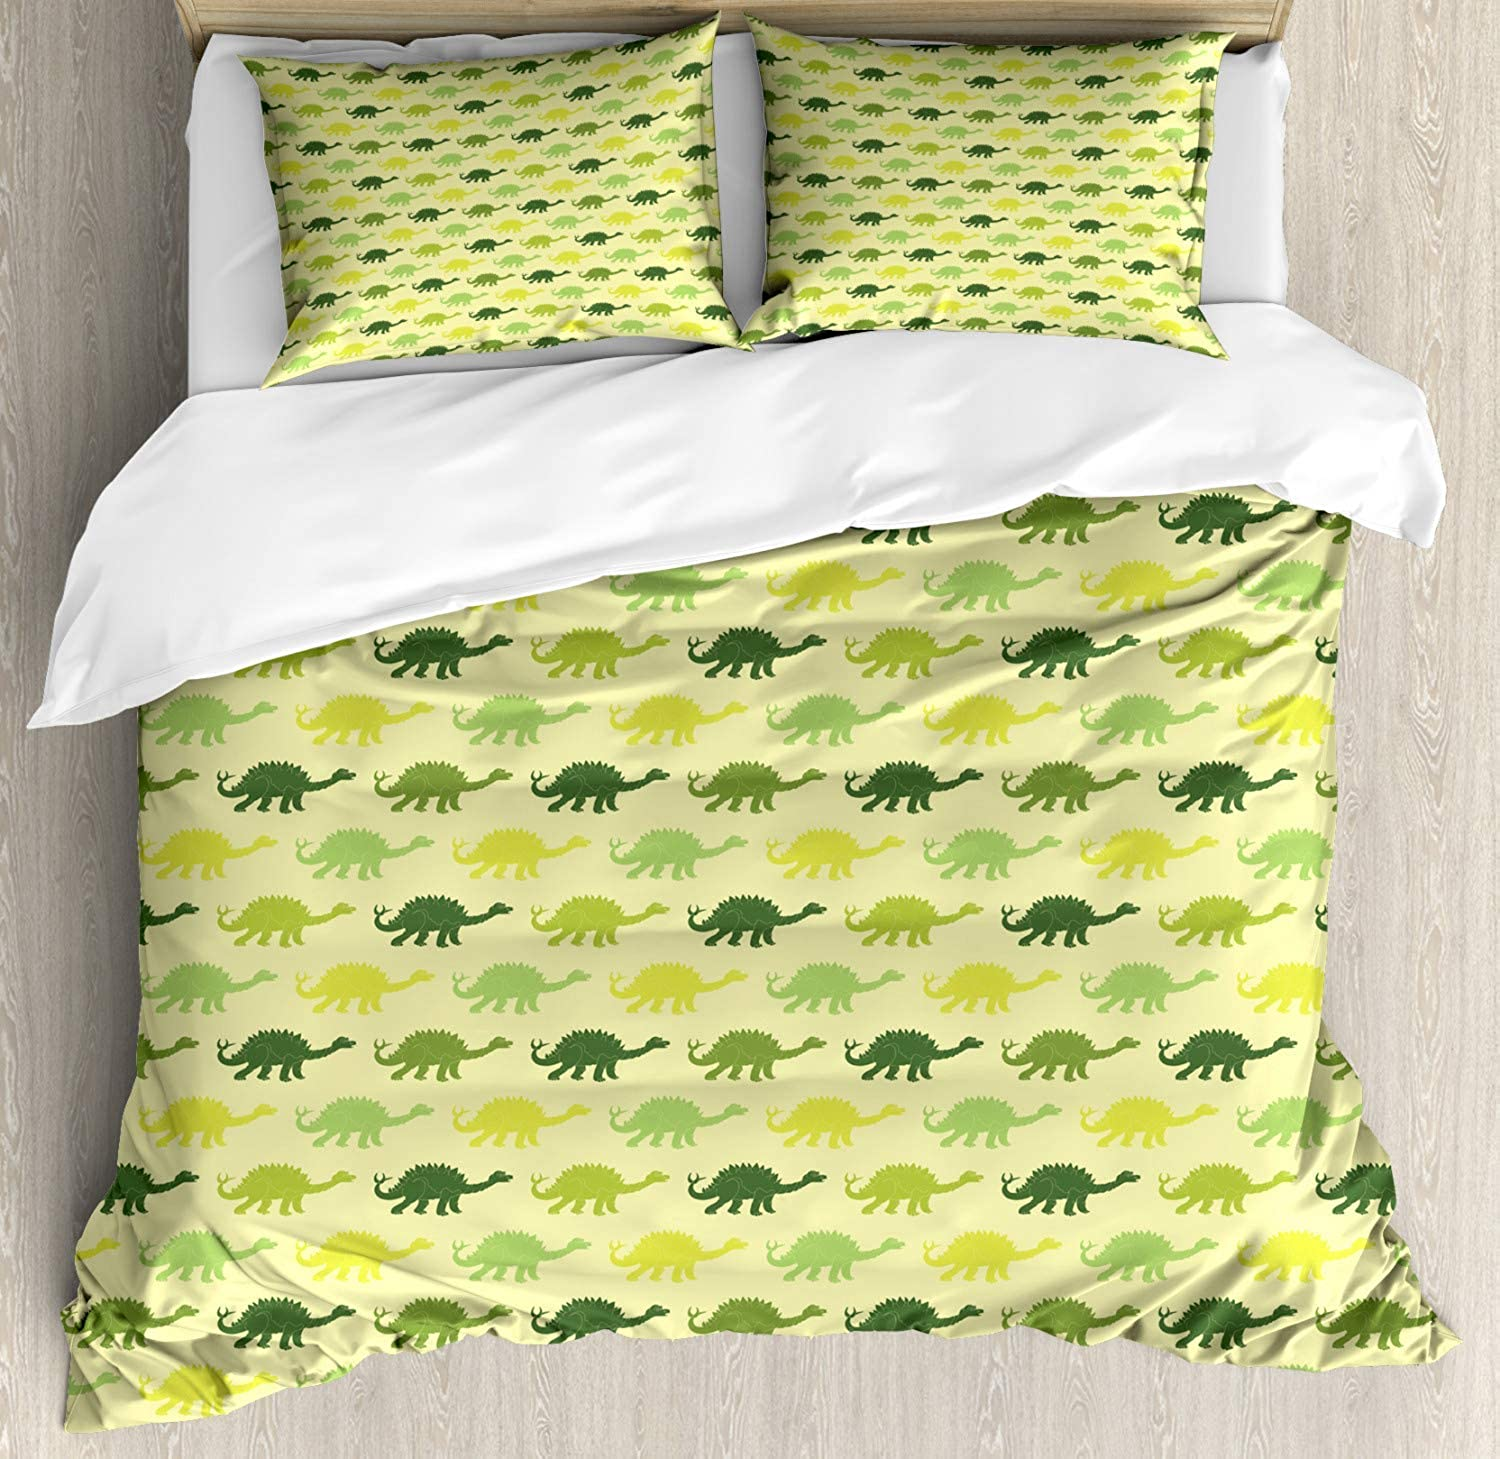 Beauty Decor Dinosaur Duvet Cover Set Repeating Pattern of Dinosaur Stegosaurus in Various Green Shades Kids Nursery 3 Piece Decorative Bedding Sets with 2 Pillow Shams King Size, Multicolor